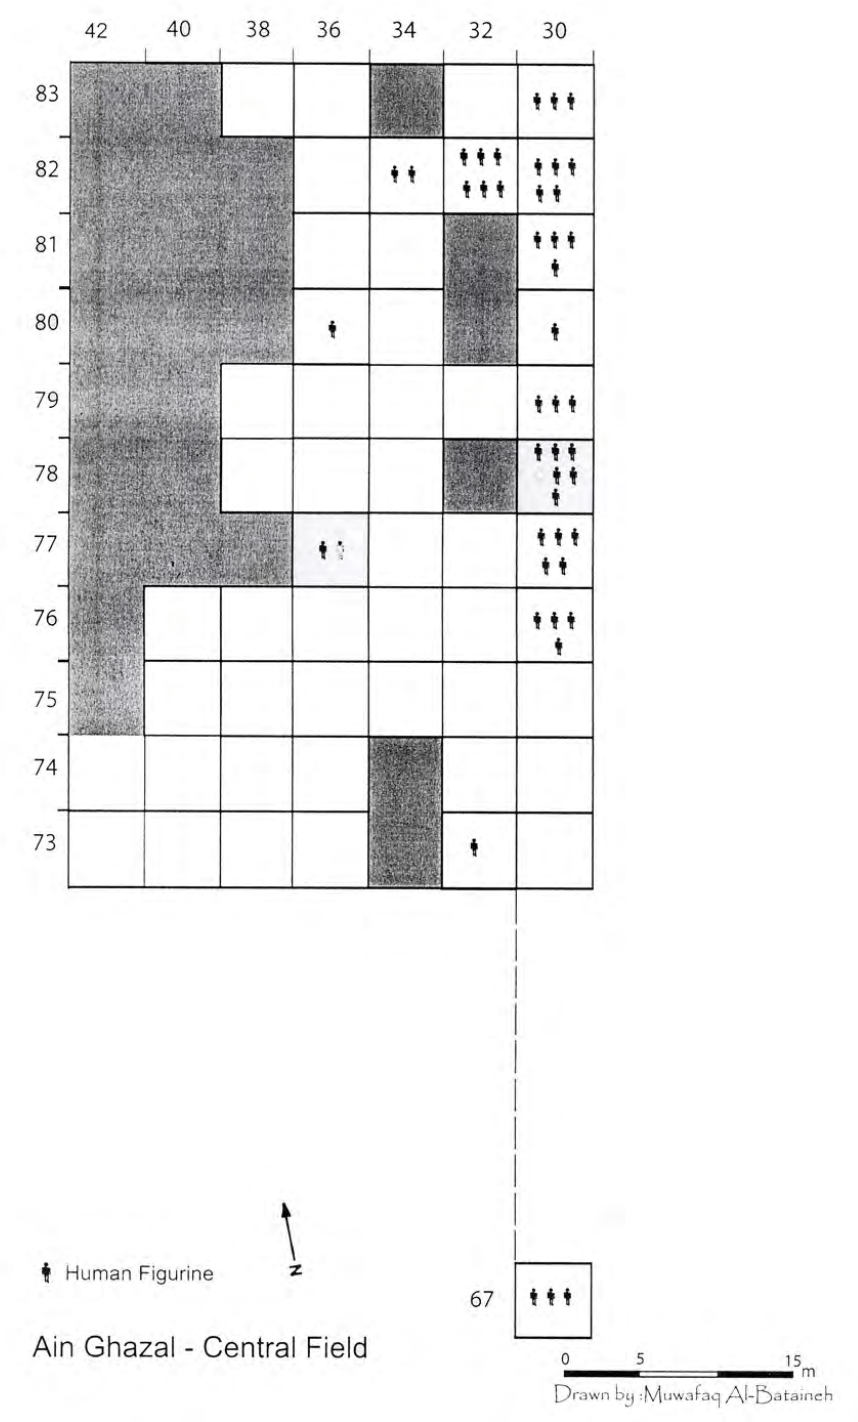 Numbered grid illustrating the number of human figurines in each excavated square.